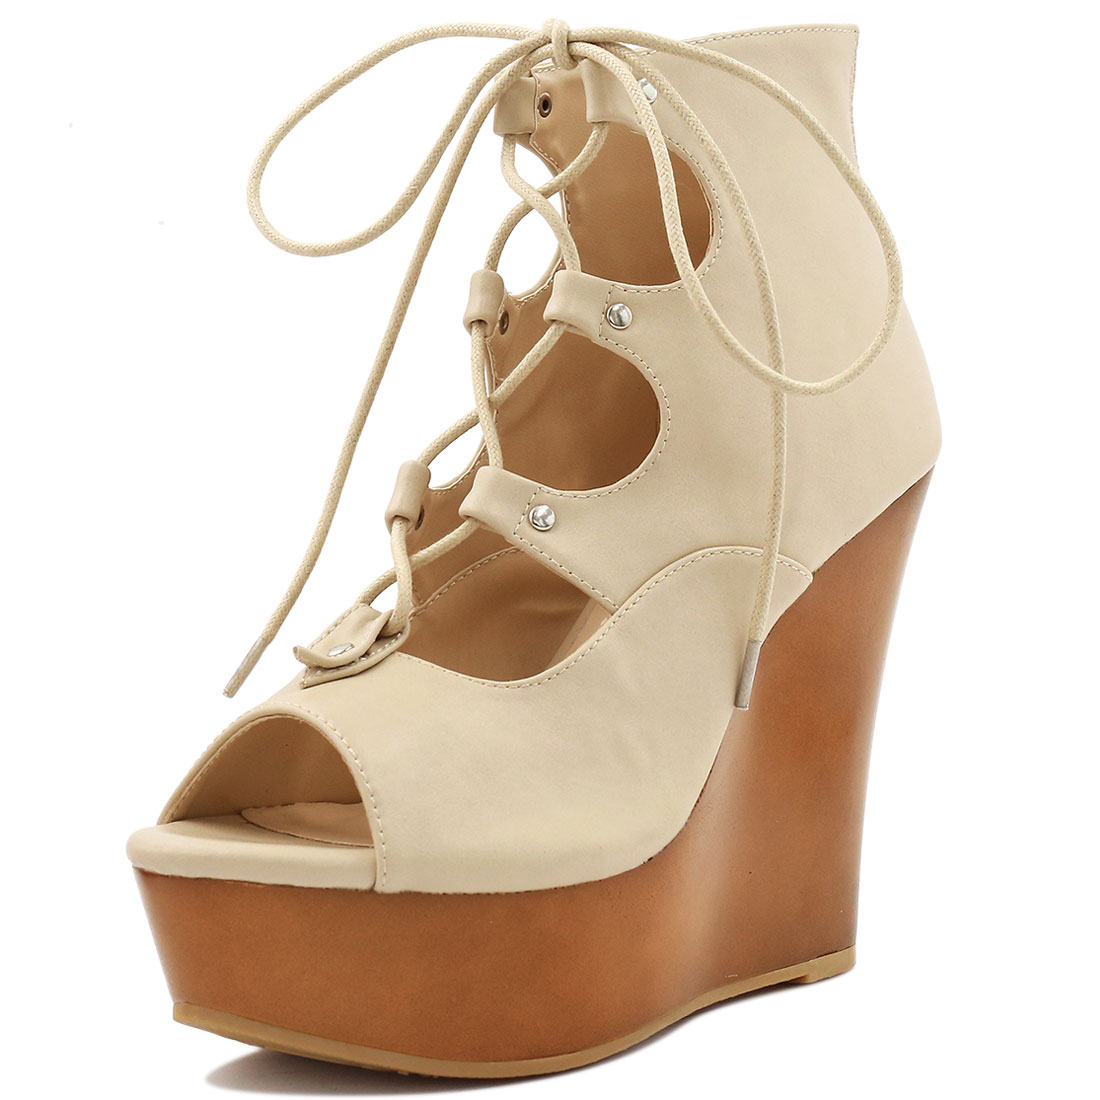 Woman Peep Toe Lace-Up Cutout Platform Wedge Sandals Beige US 7